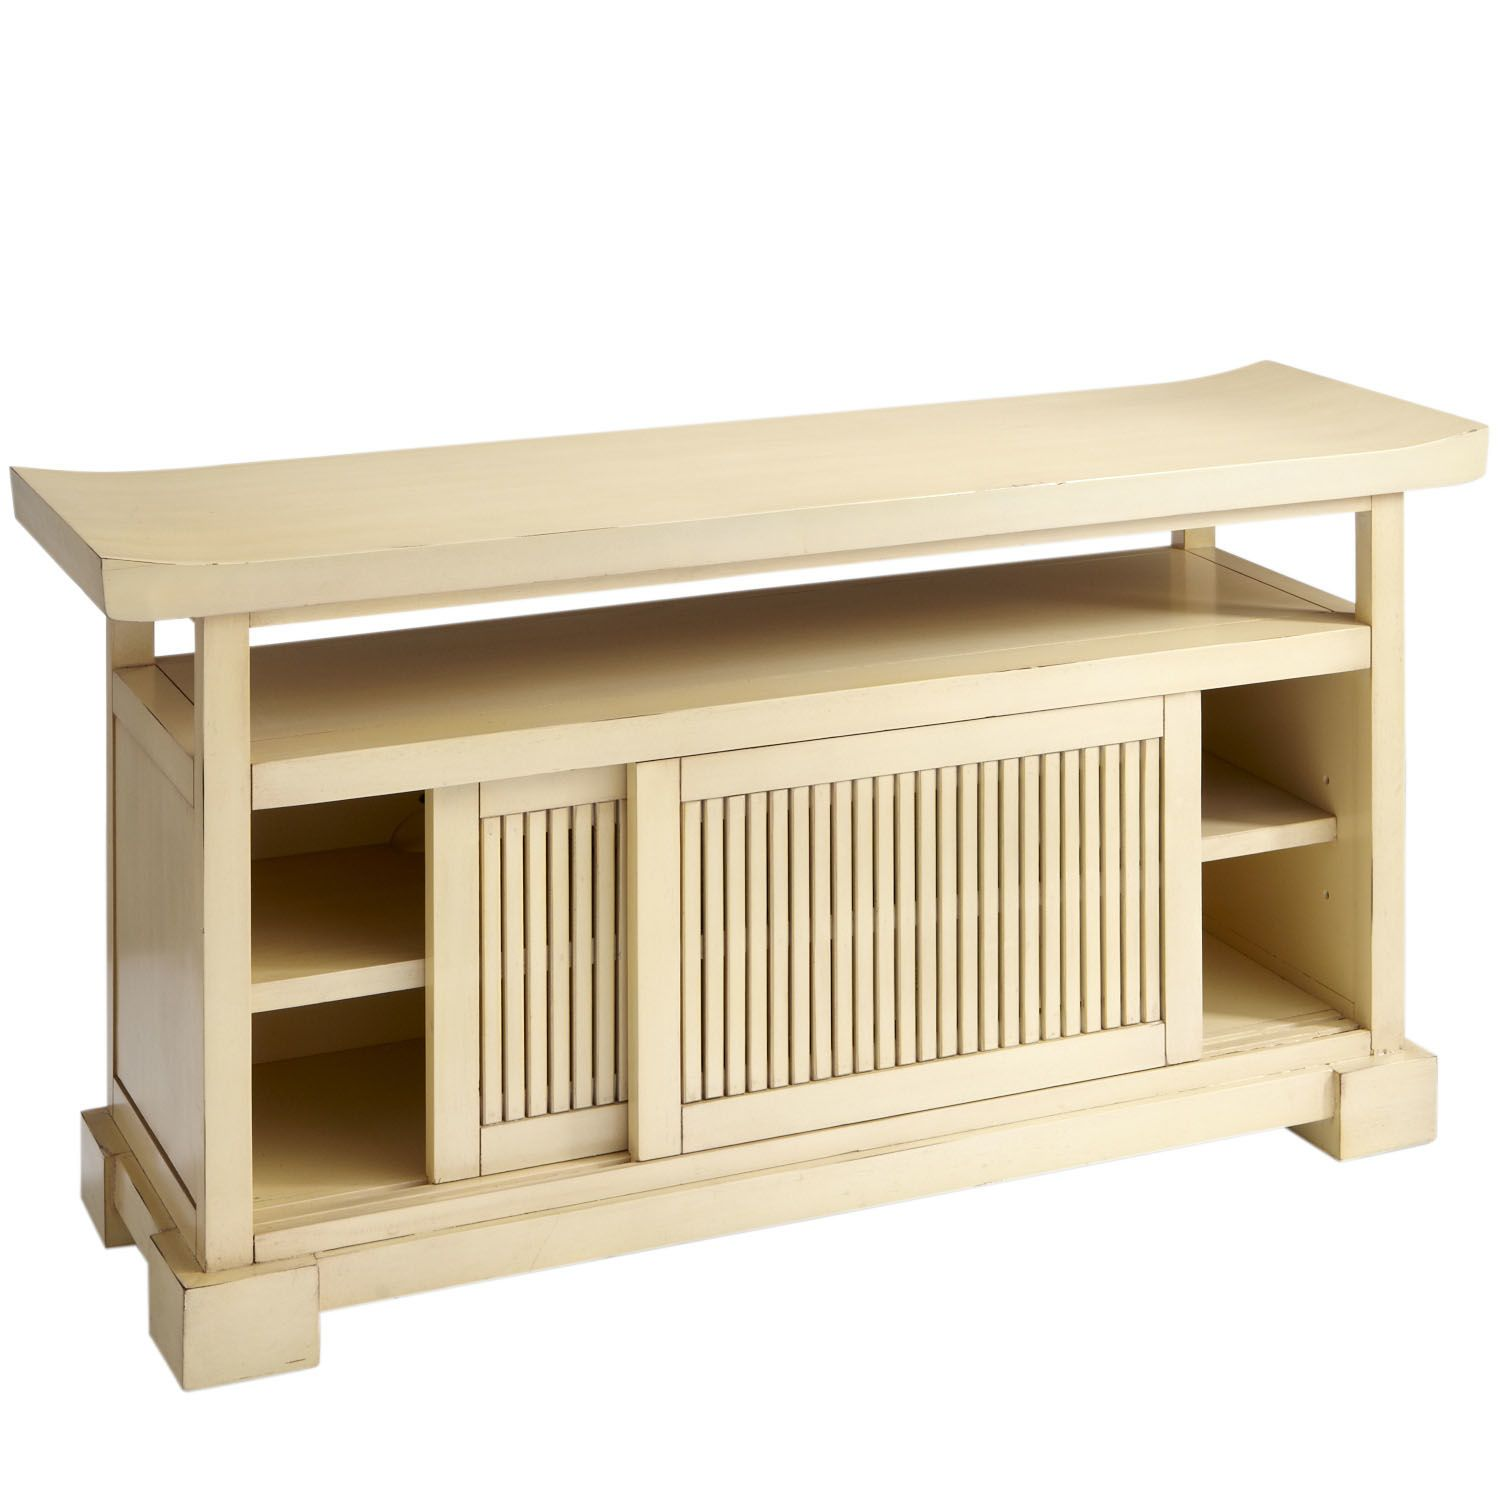 Harga Jual Gradenza Moonstone G Terbaru 2018 Kaos Couple Lengan Panjang Aj81 Fung Tv Stand Antique Ivory Pier 1 Imports That Fam Room